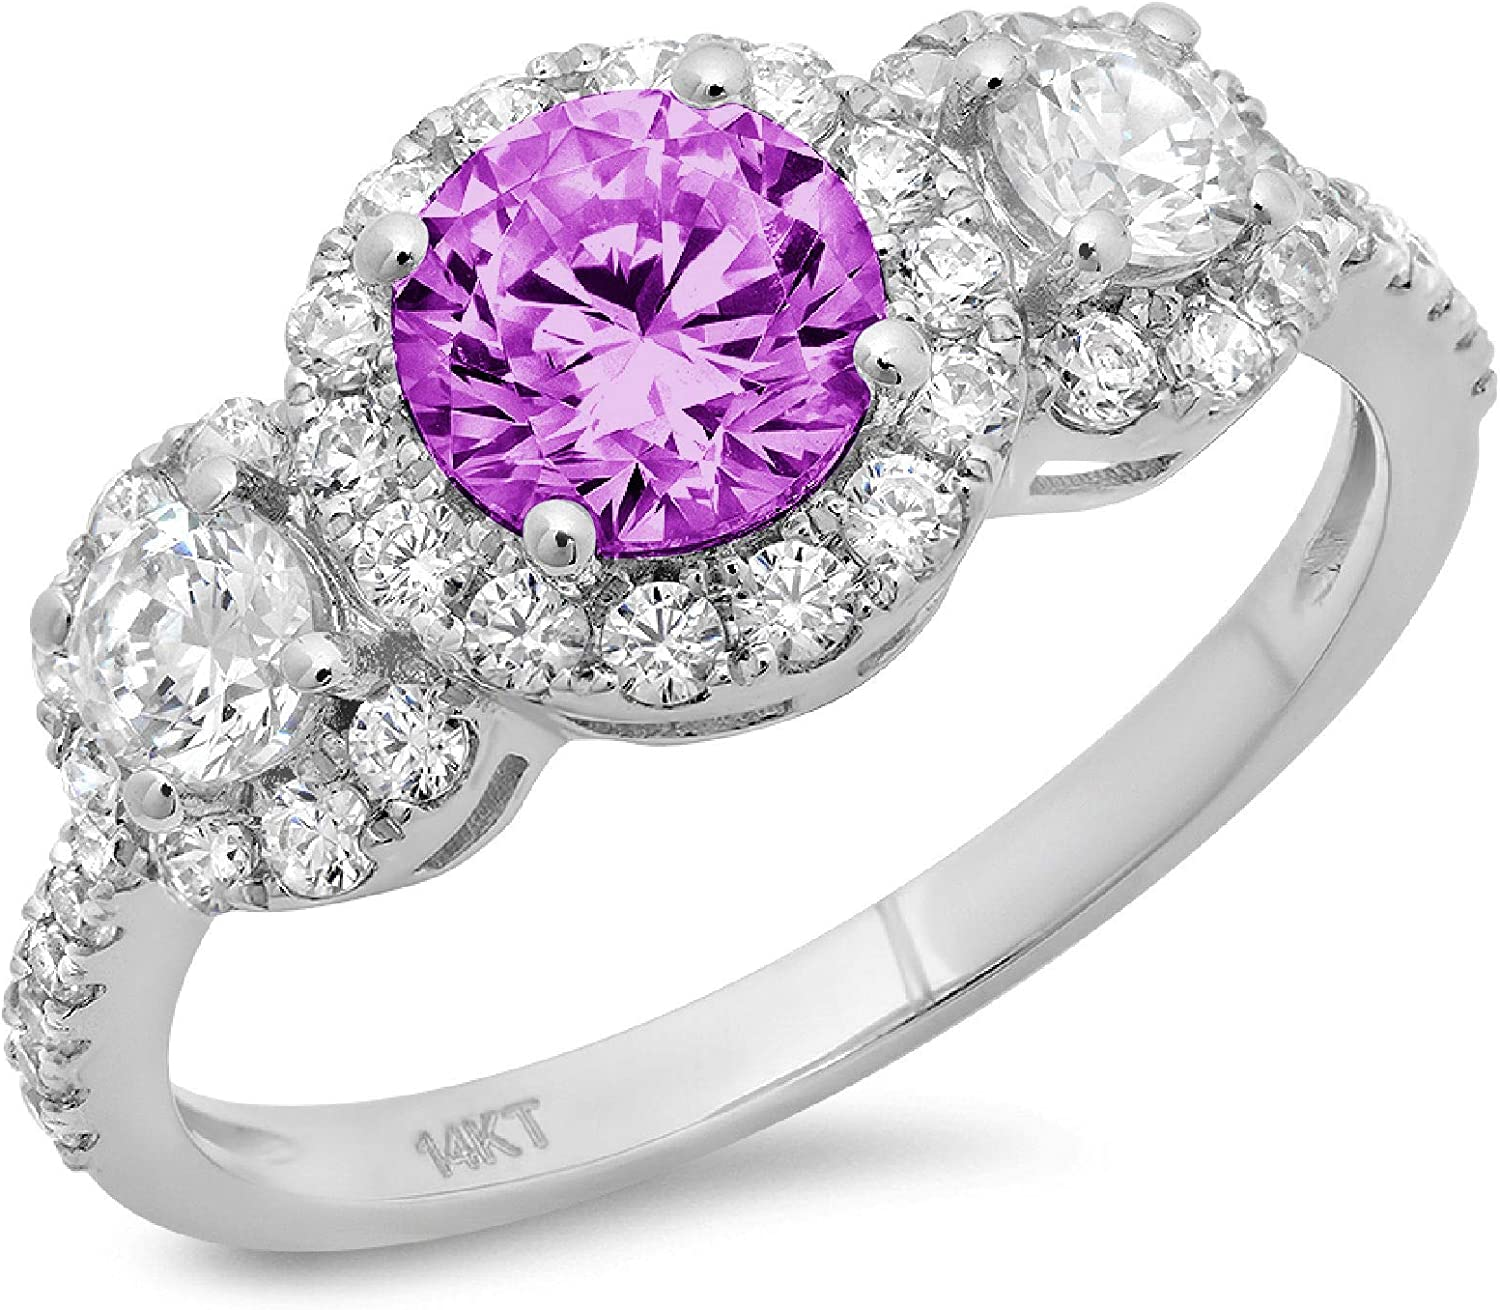 1.8 ct Round Ranking TOP18 Cut Halo Solitaire Stunning With 3 Accent Gen Sale Special Price stone